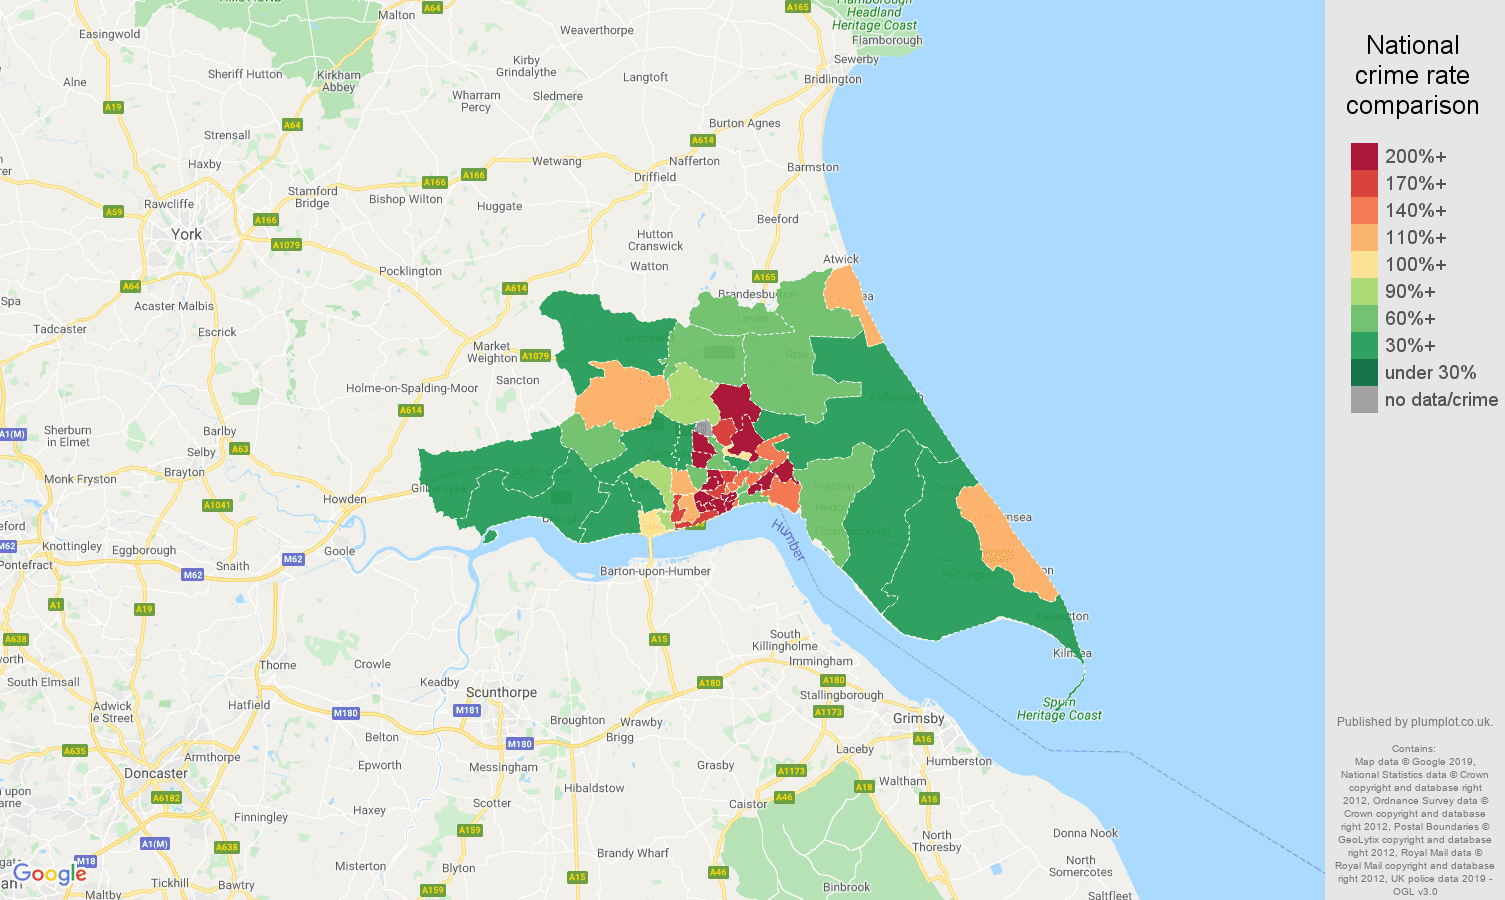 Hull public order crime rate comparison map